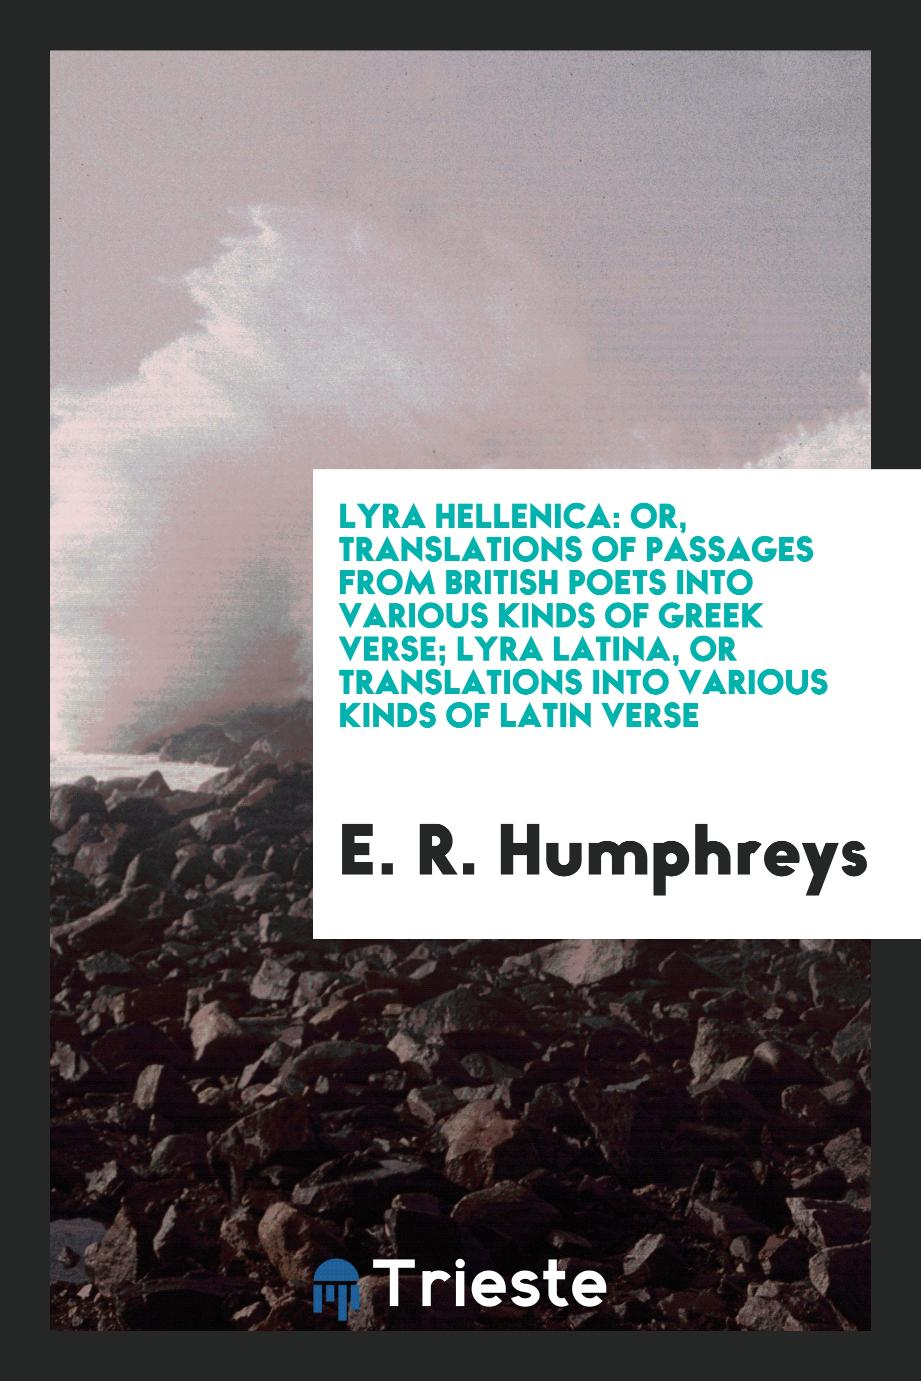 Lyra Hellenica: Or, Translations of Passages from British Poets into Various Kinds of Greek Verse; Lyra Latina, or Translations into Various Kinds of Latin Verse